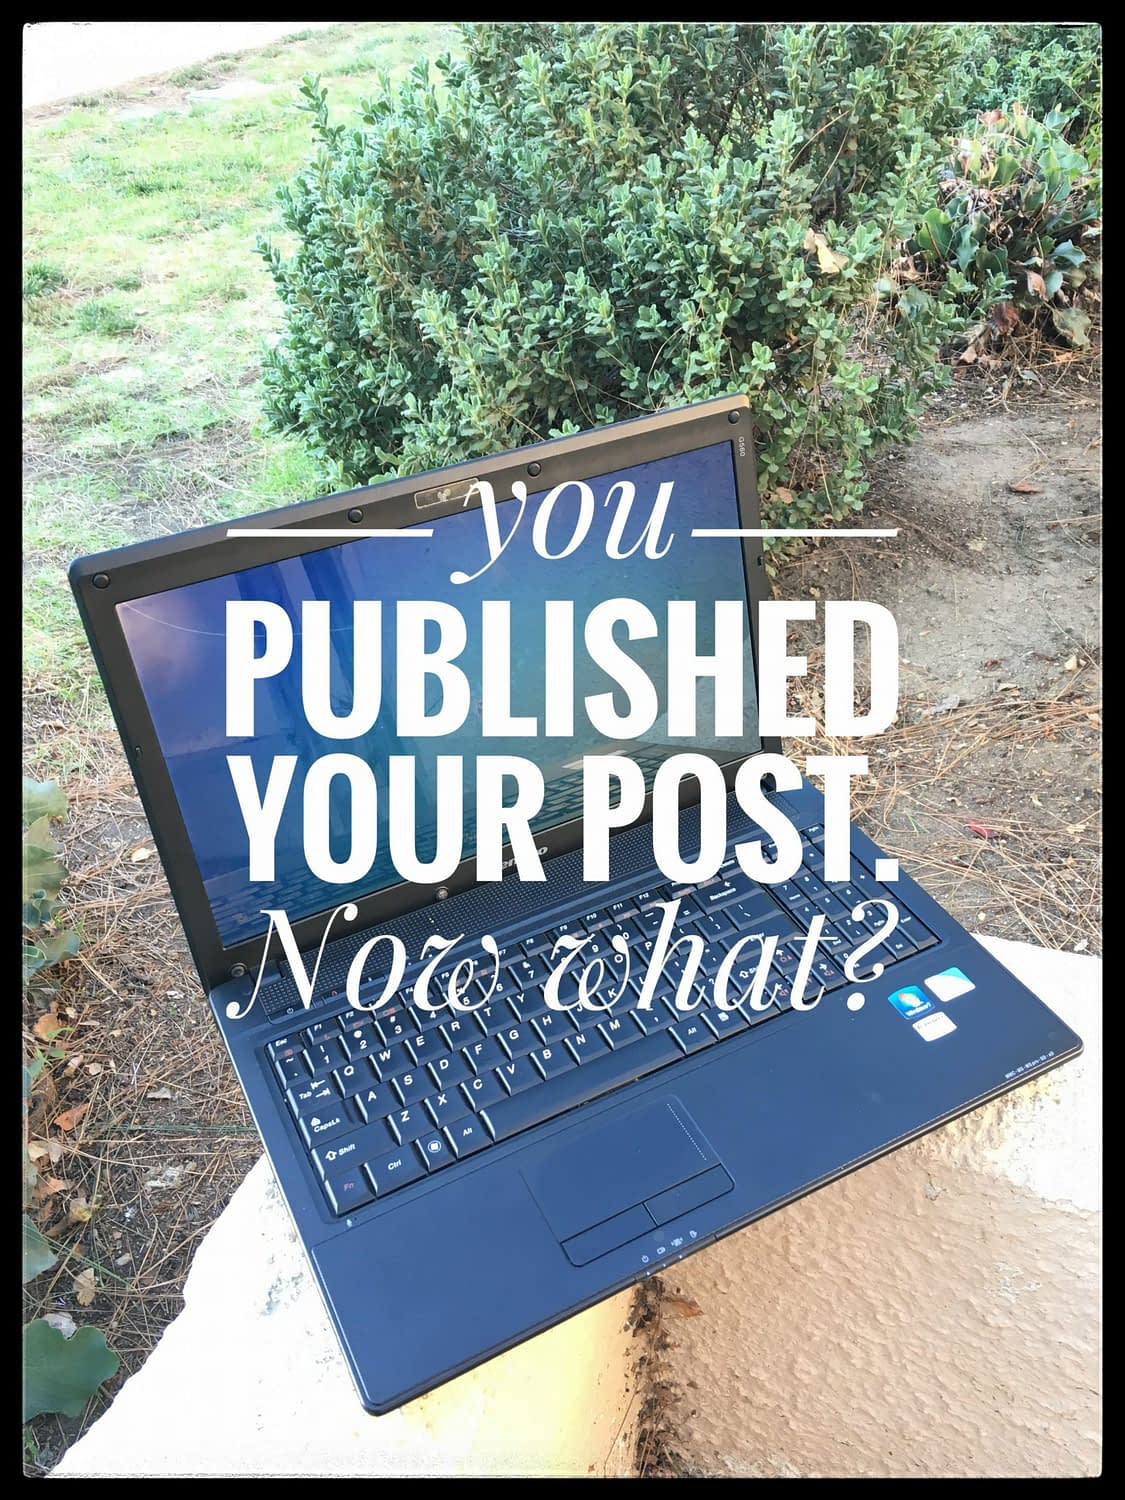 Blog Post Publication Checklist helps #Bloggers